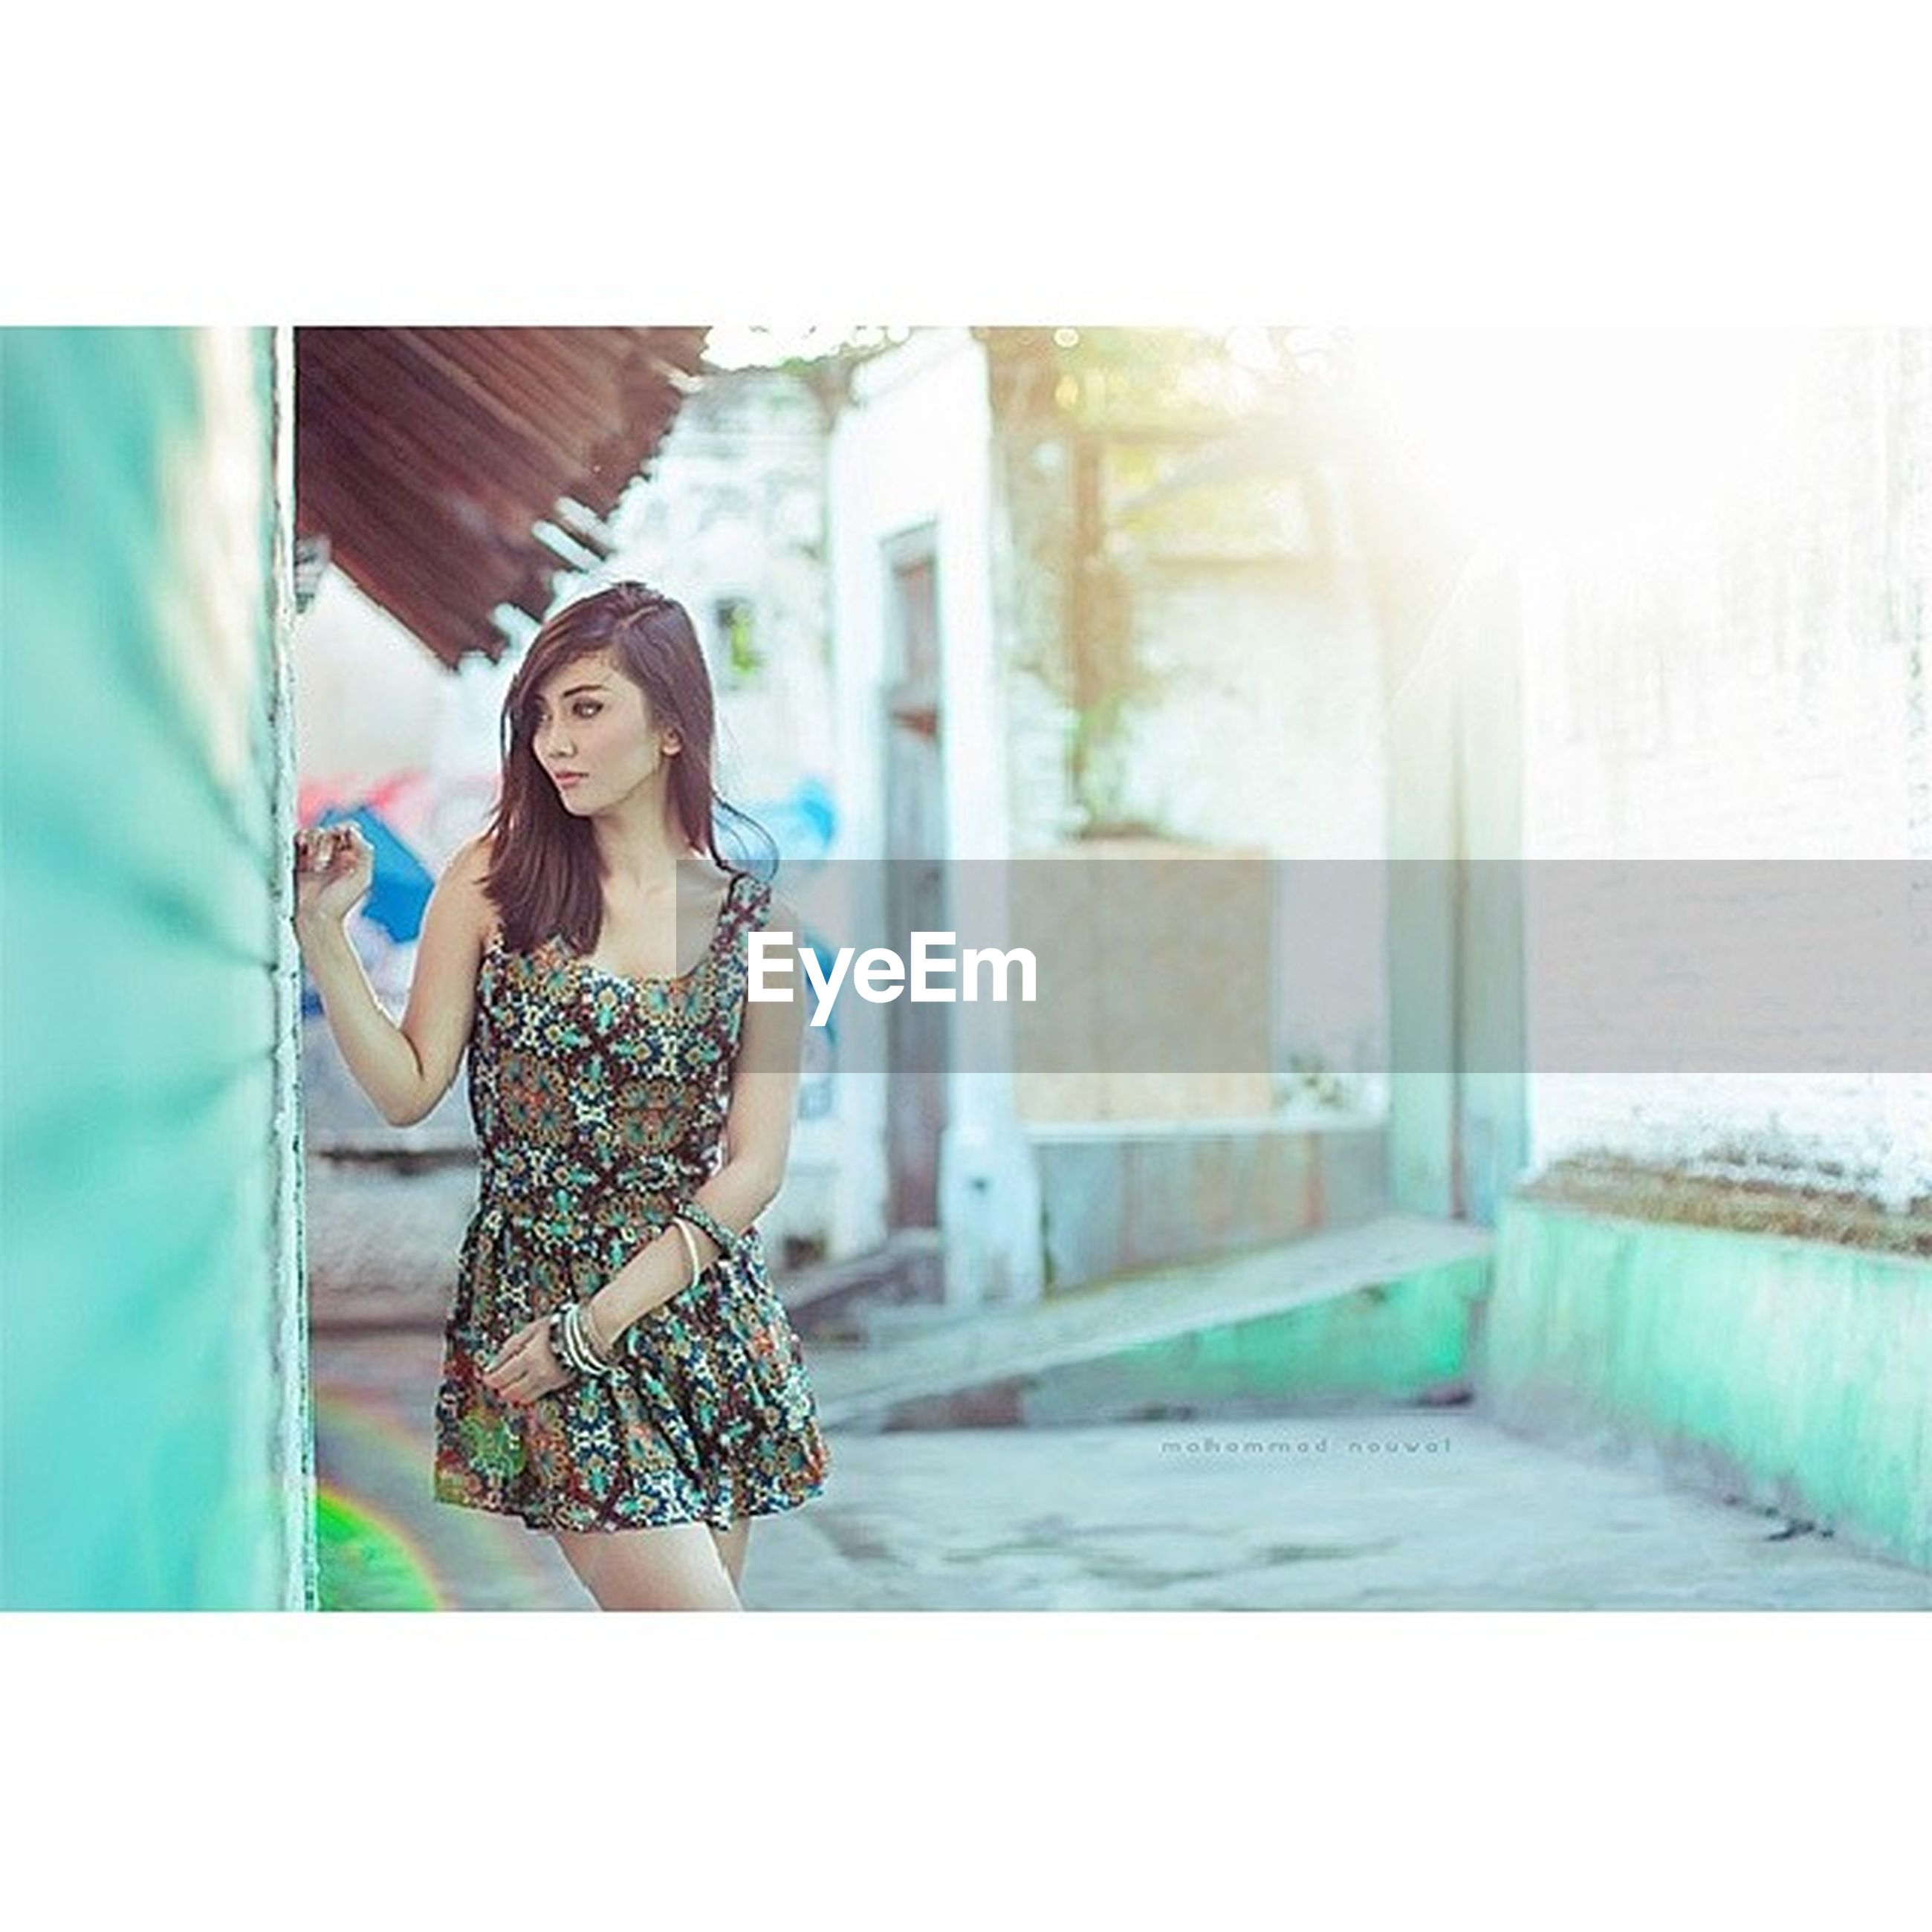 young adult, person, lifestyles, architecture, looking at camera, built structure, young women, portrait, leisure activity, building exterior, casual clothing, standing, front view, transfer print, auto post production filter, sunlight, full length